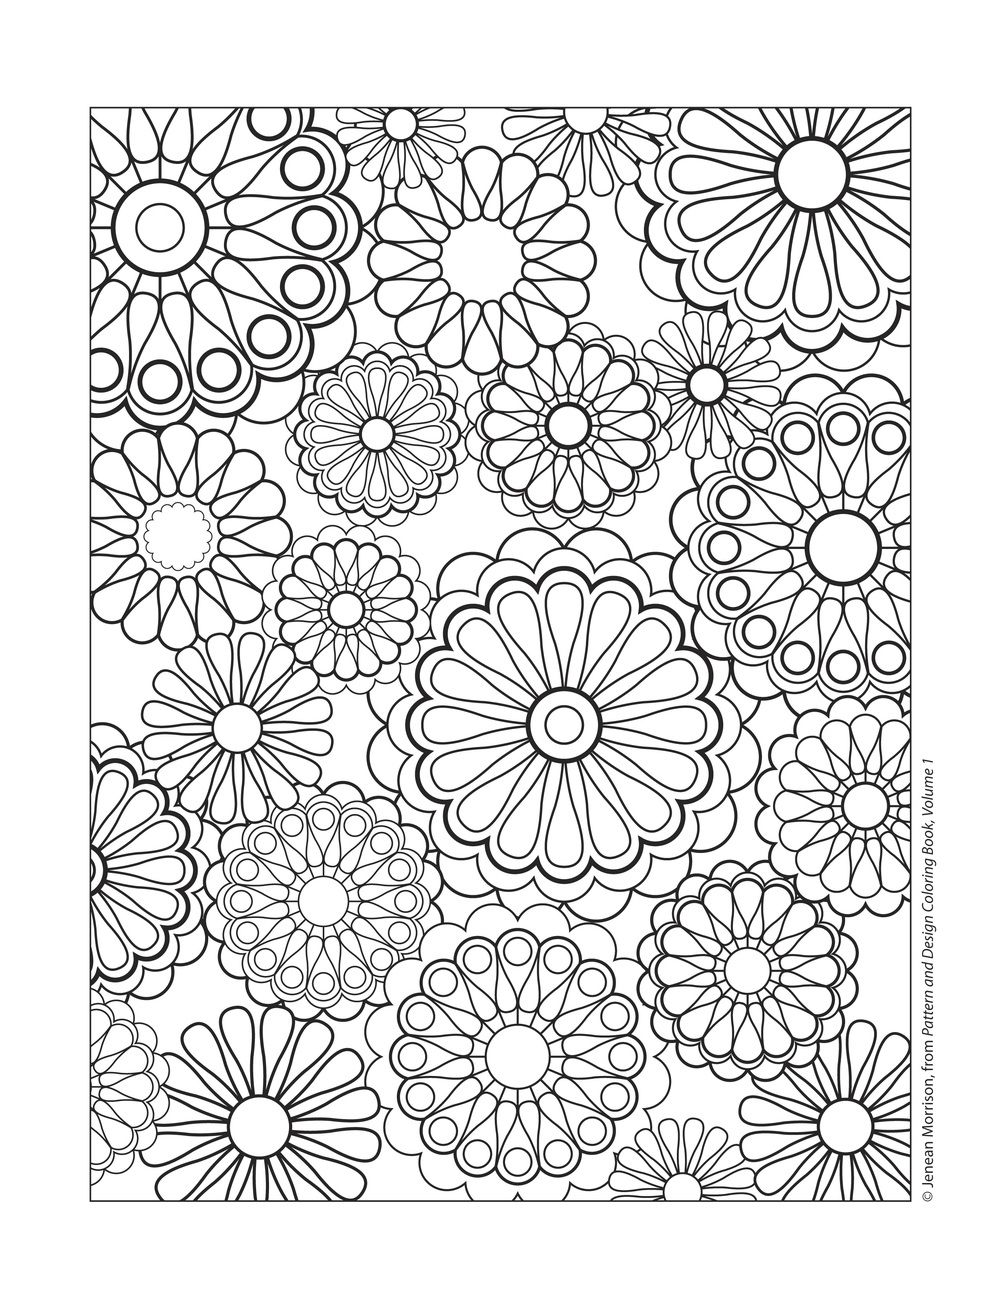 Free Coloring Pages Pattern Coloring Pages Designs Coloring Books Mandala Coloring Books